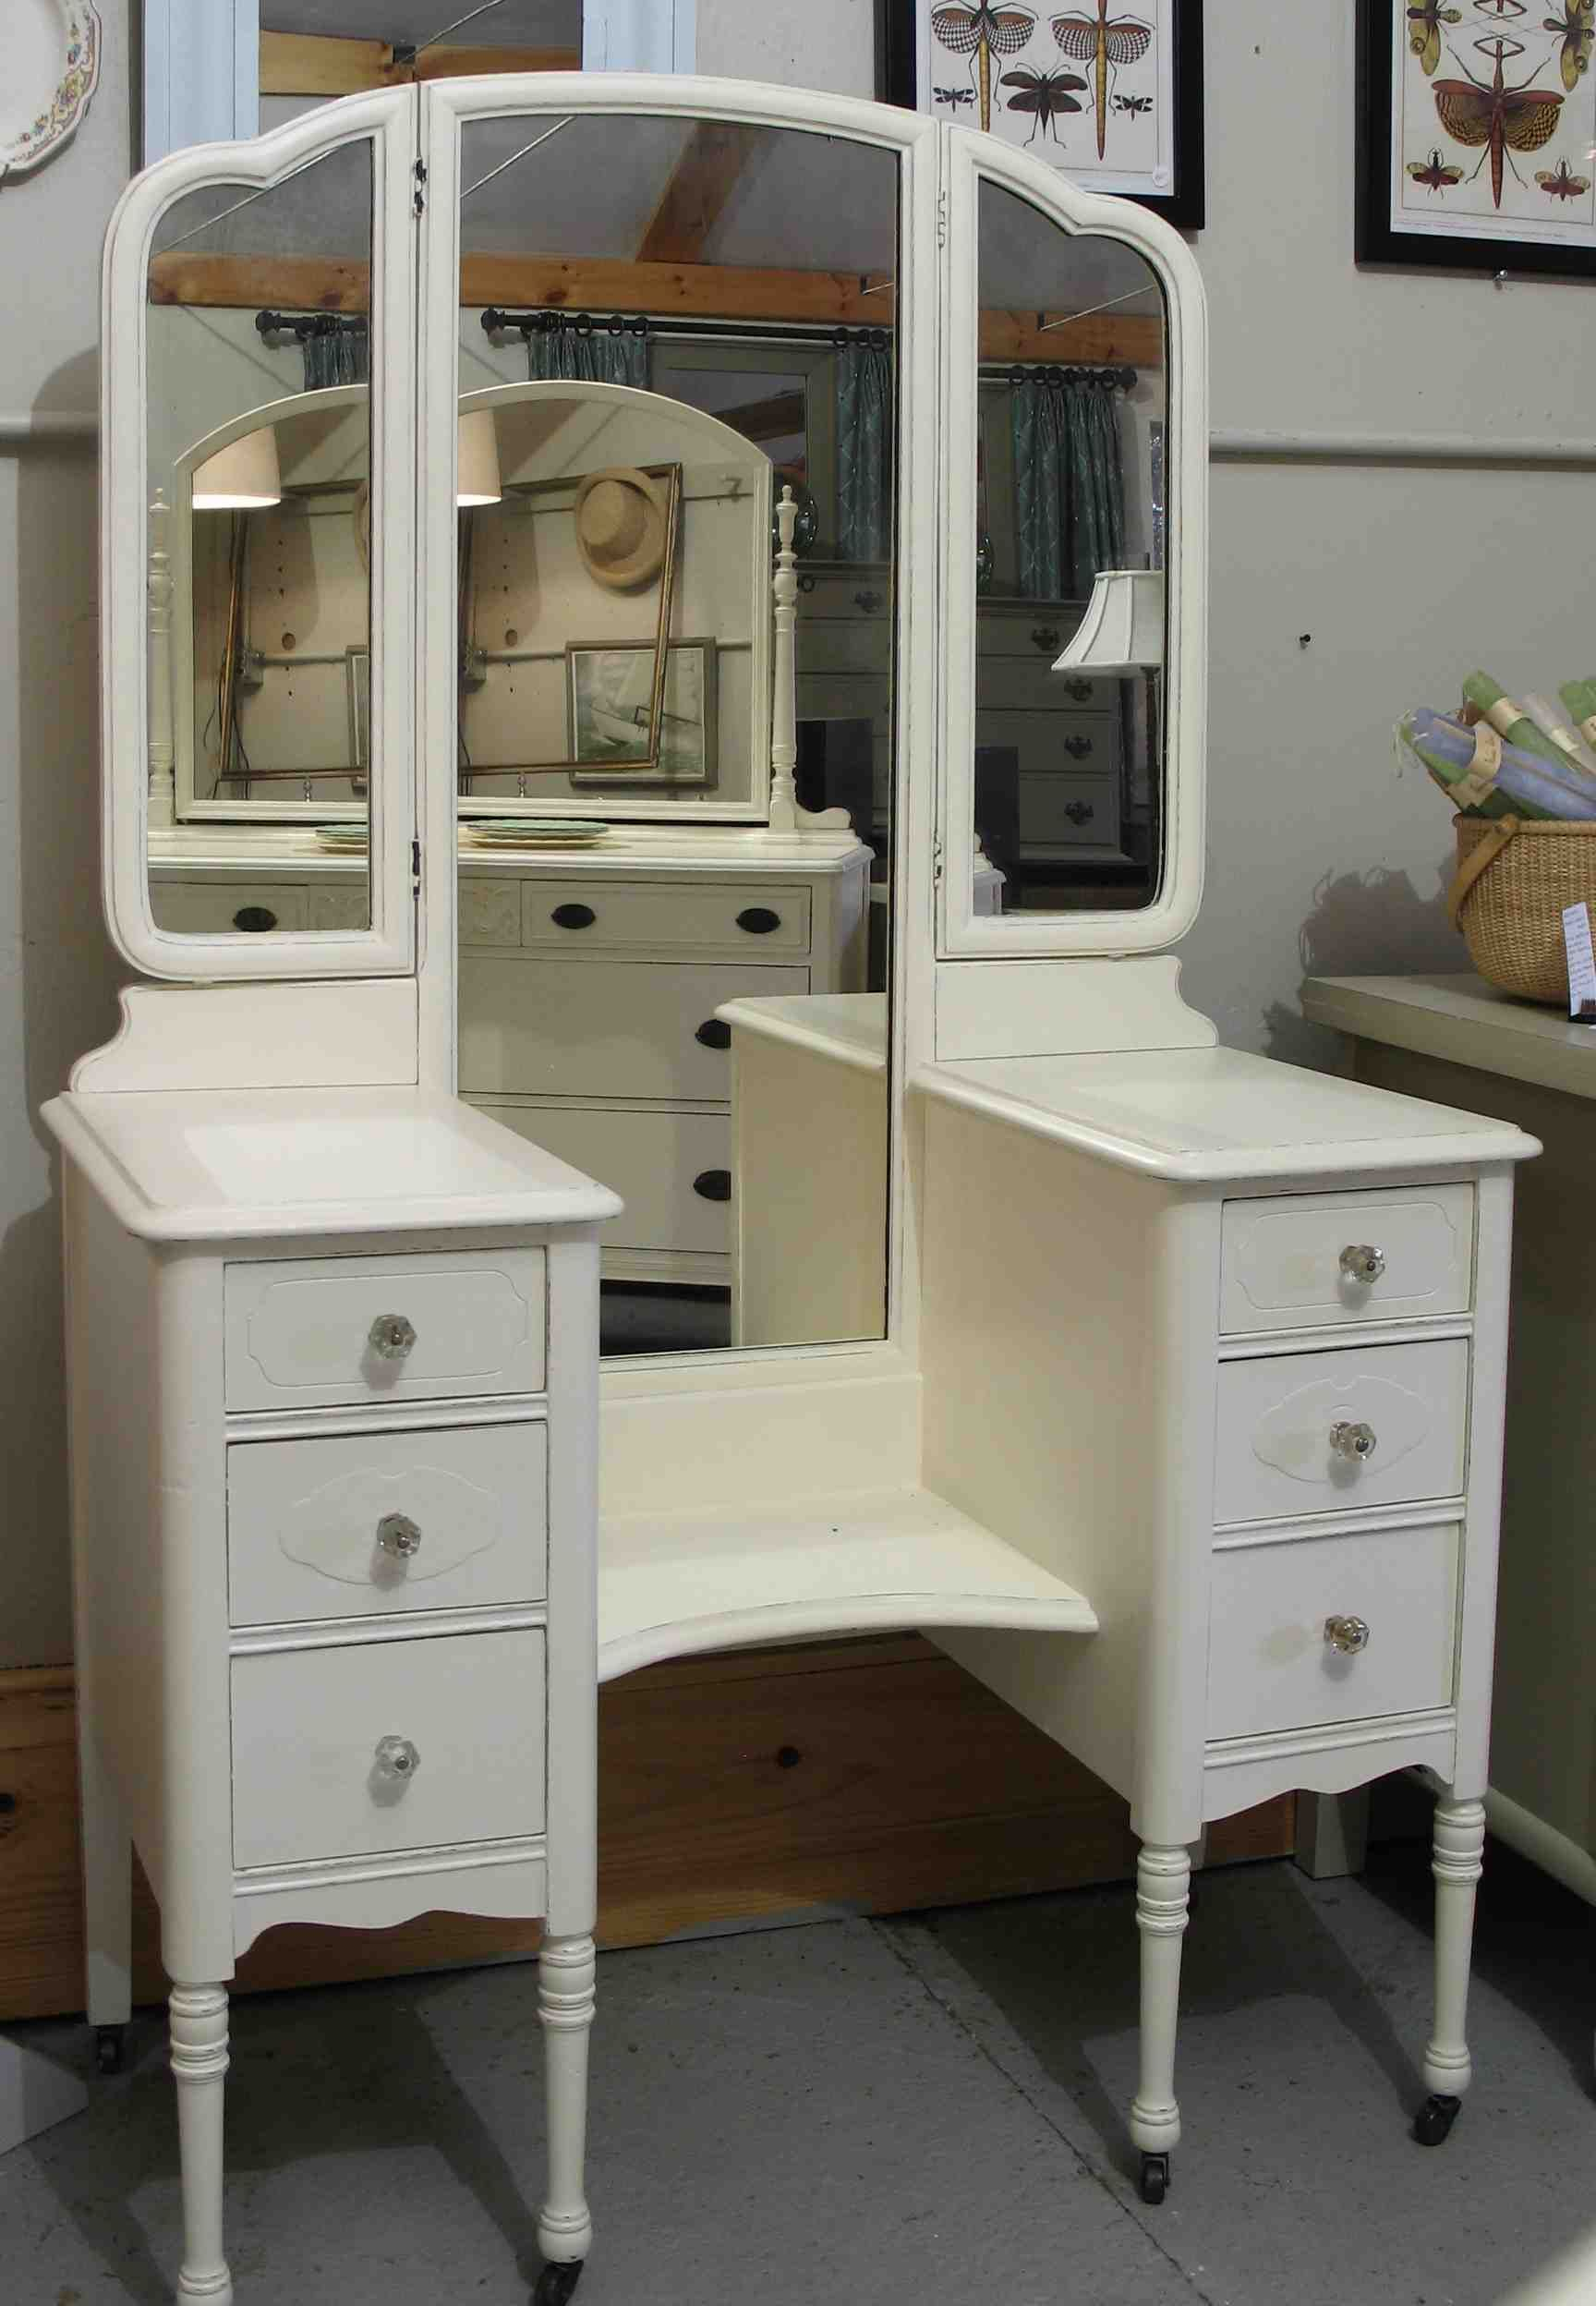 Furniture, Old And Vintage Wooden Makeup Vanity Table With 3 Fold Mirror  Set And Shelves